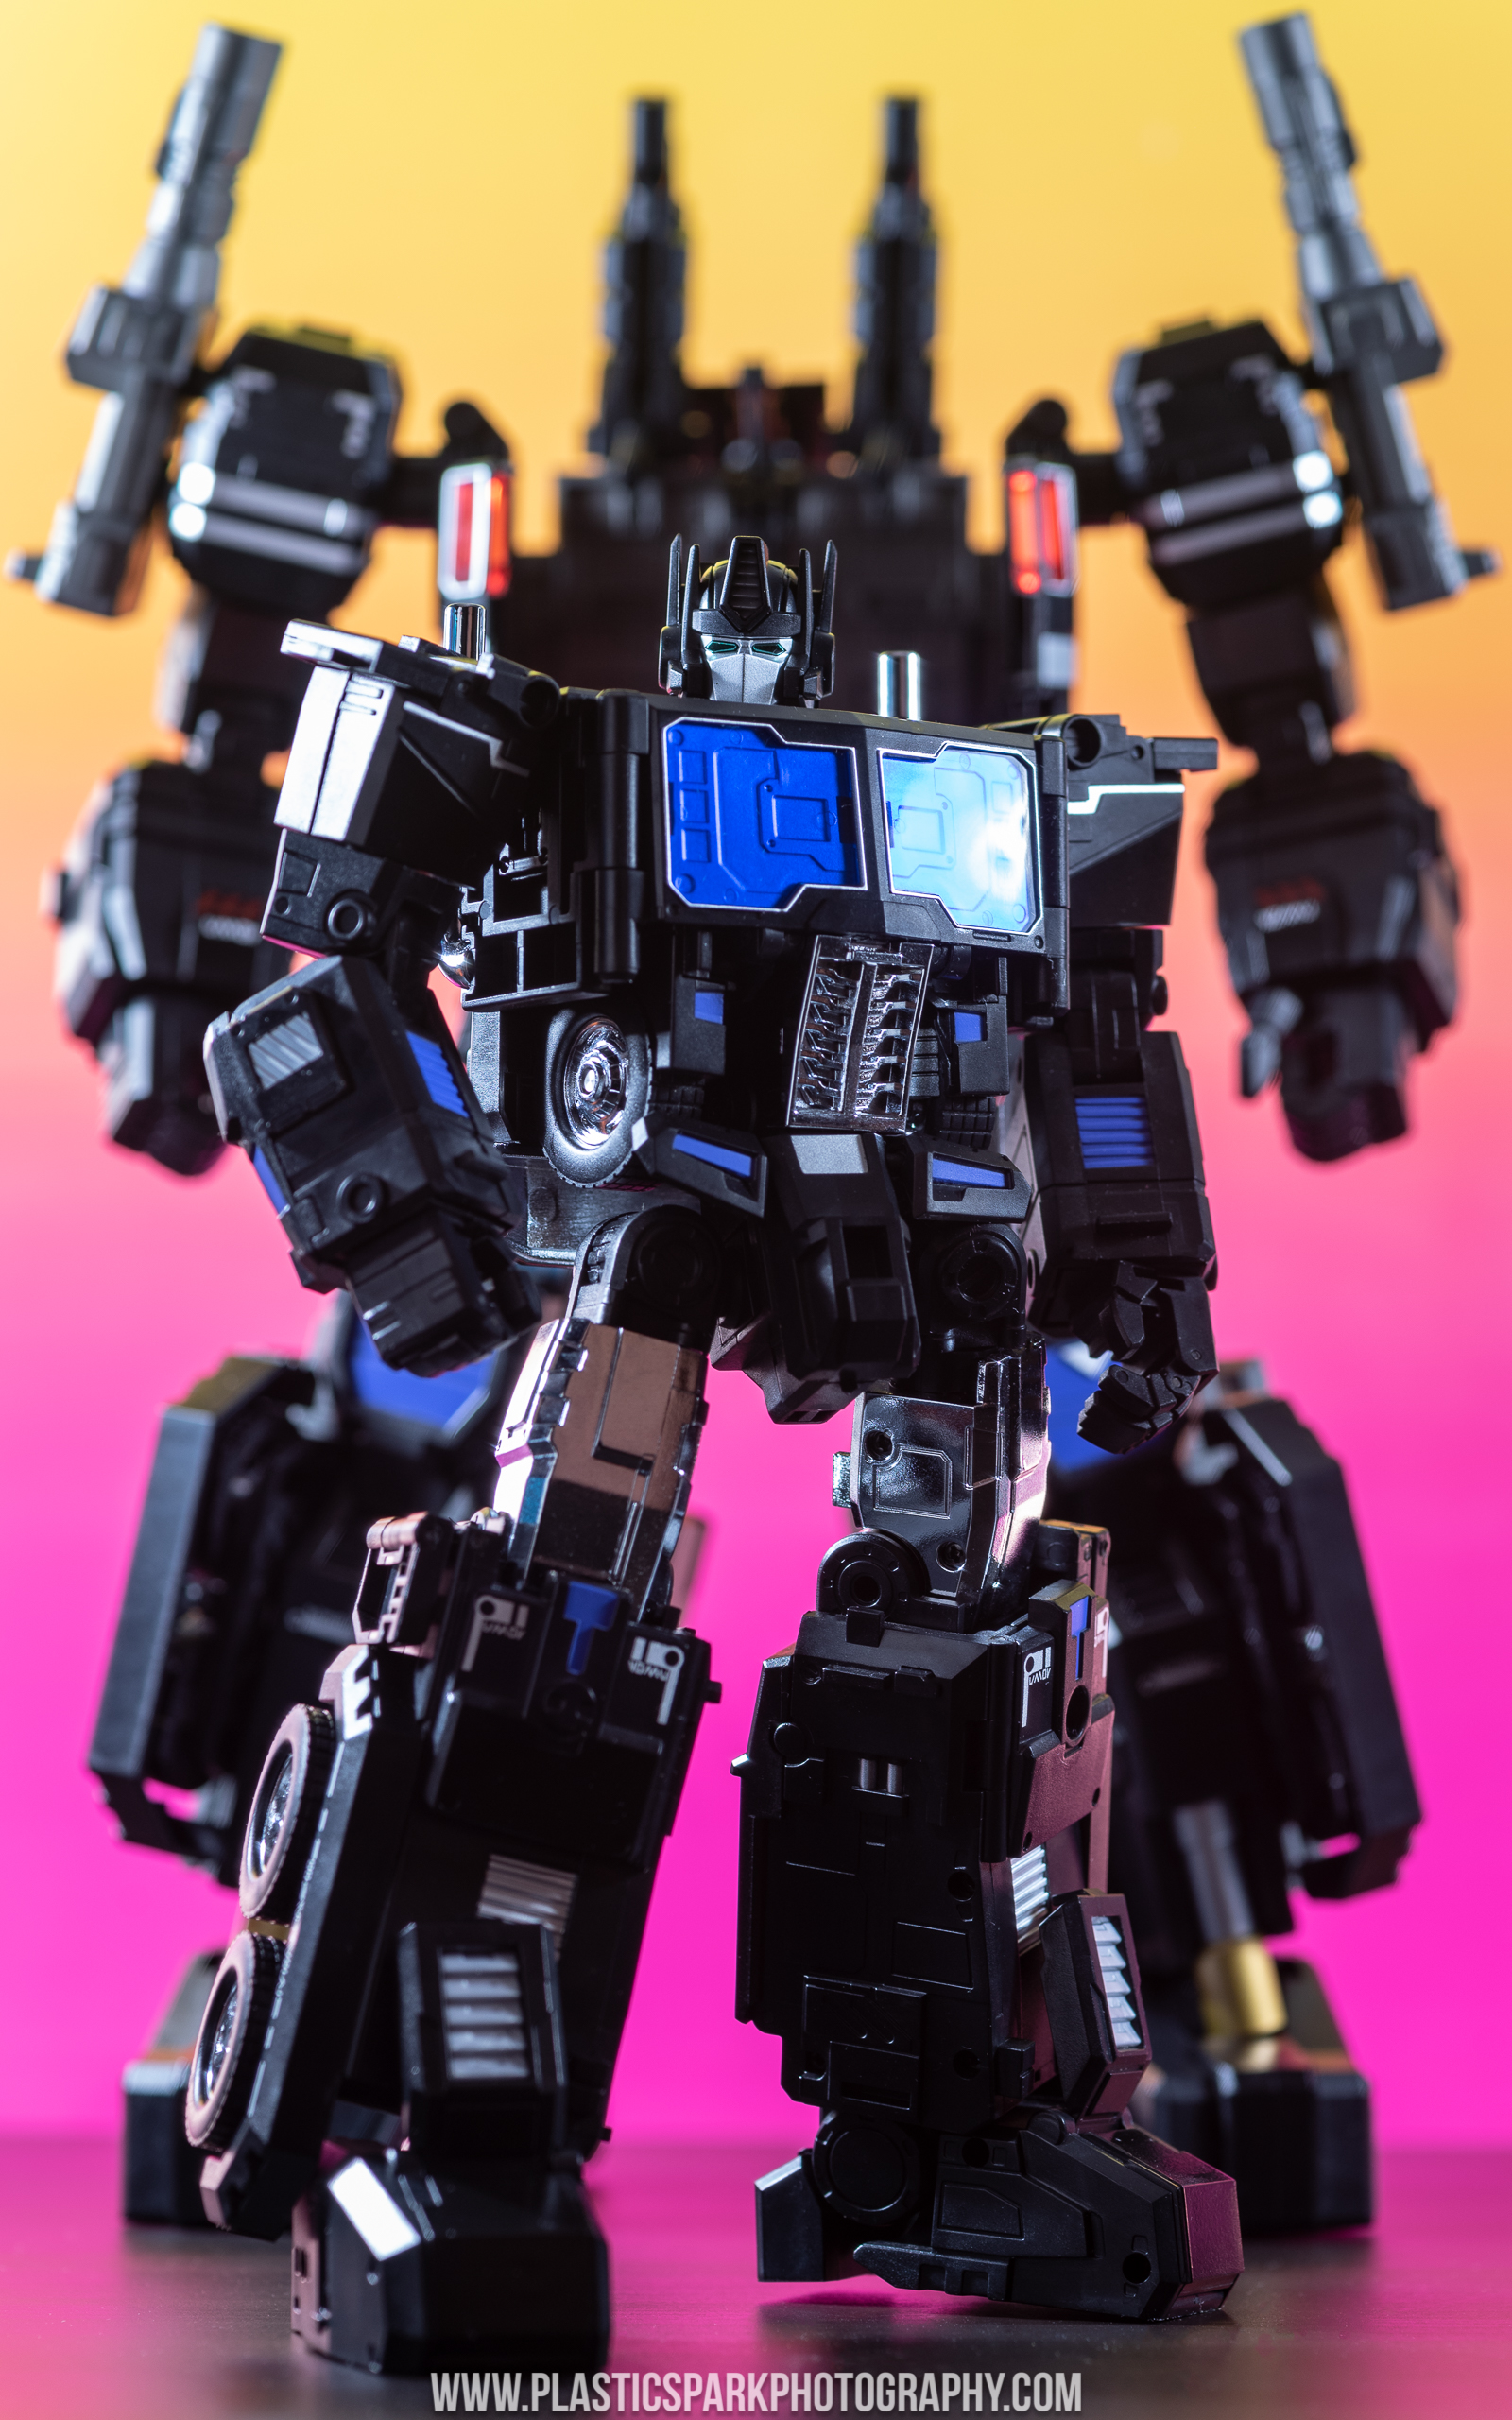 Fans Hobby MB-06A Black Power Baser Preview (8 of 10).jpg